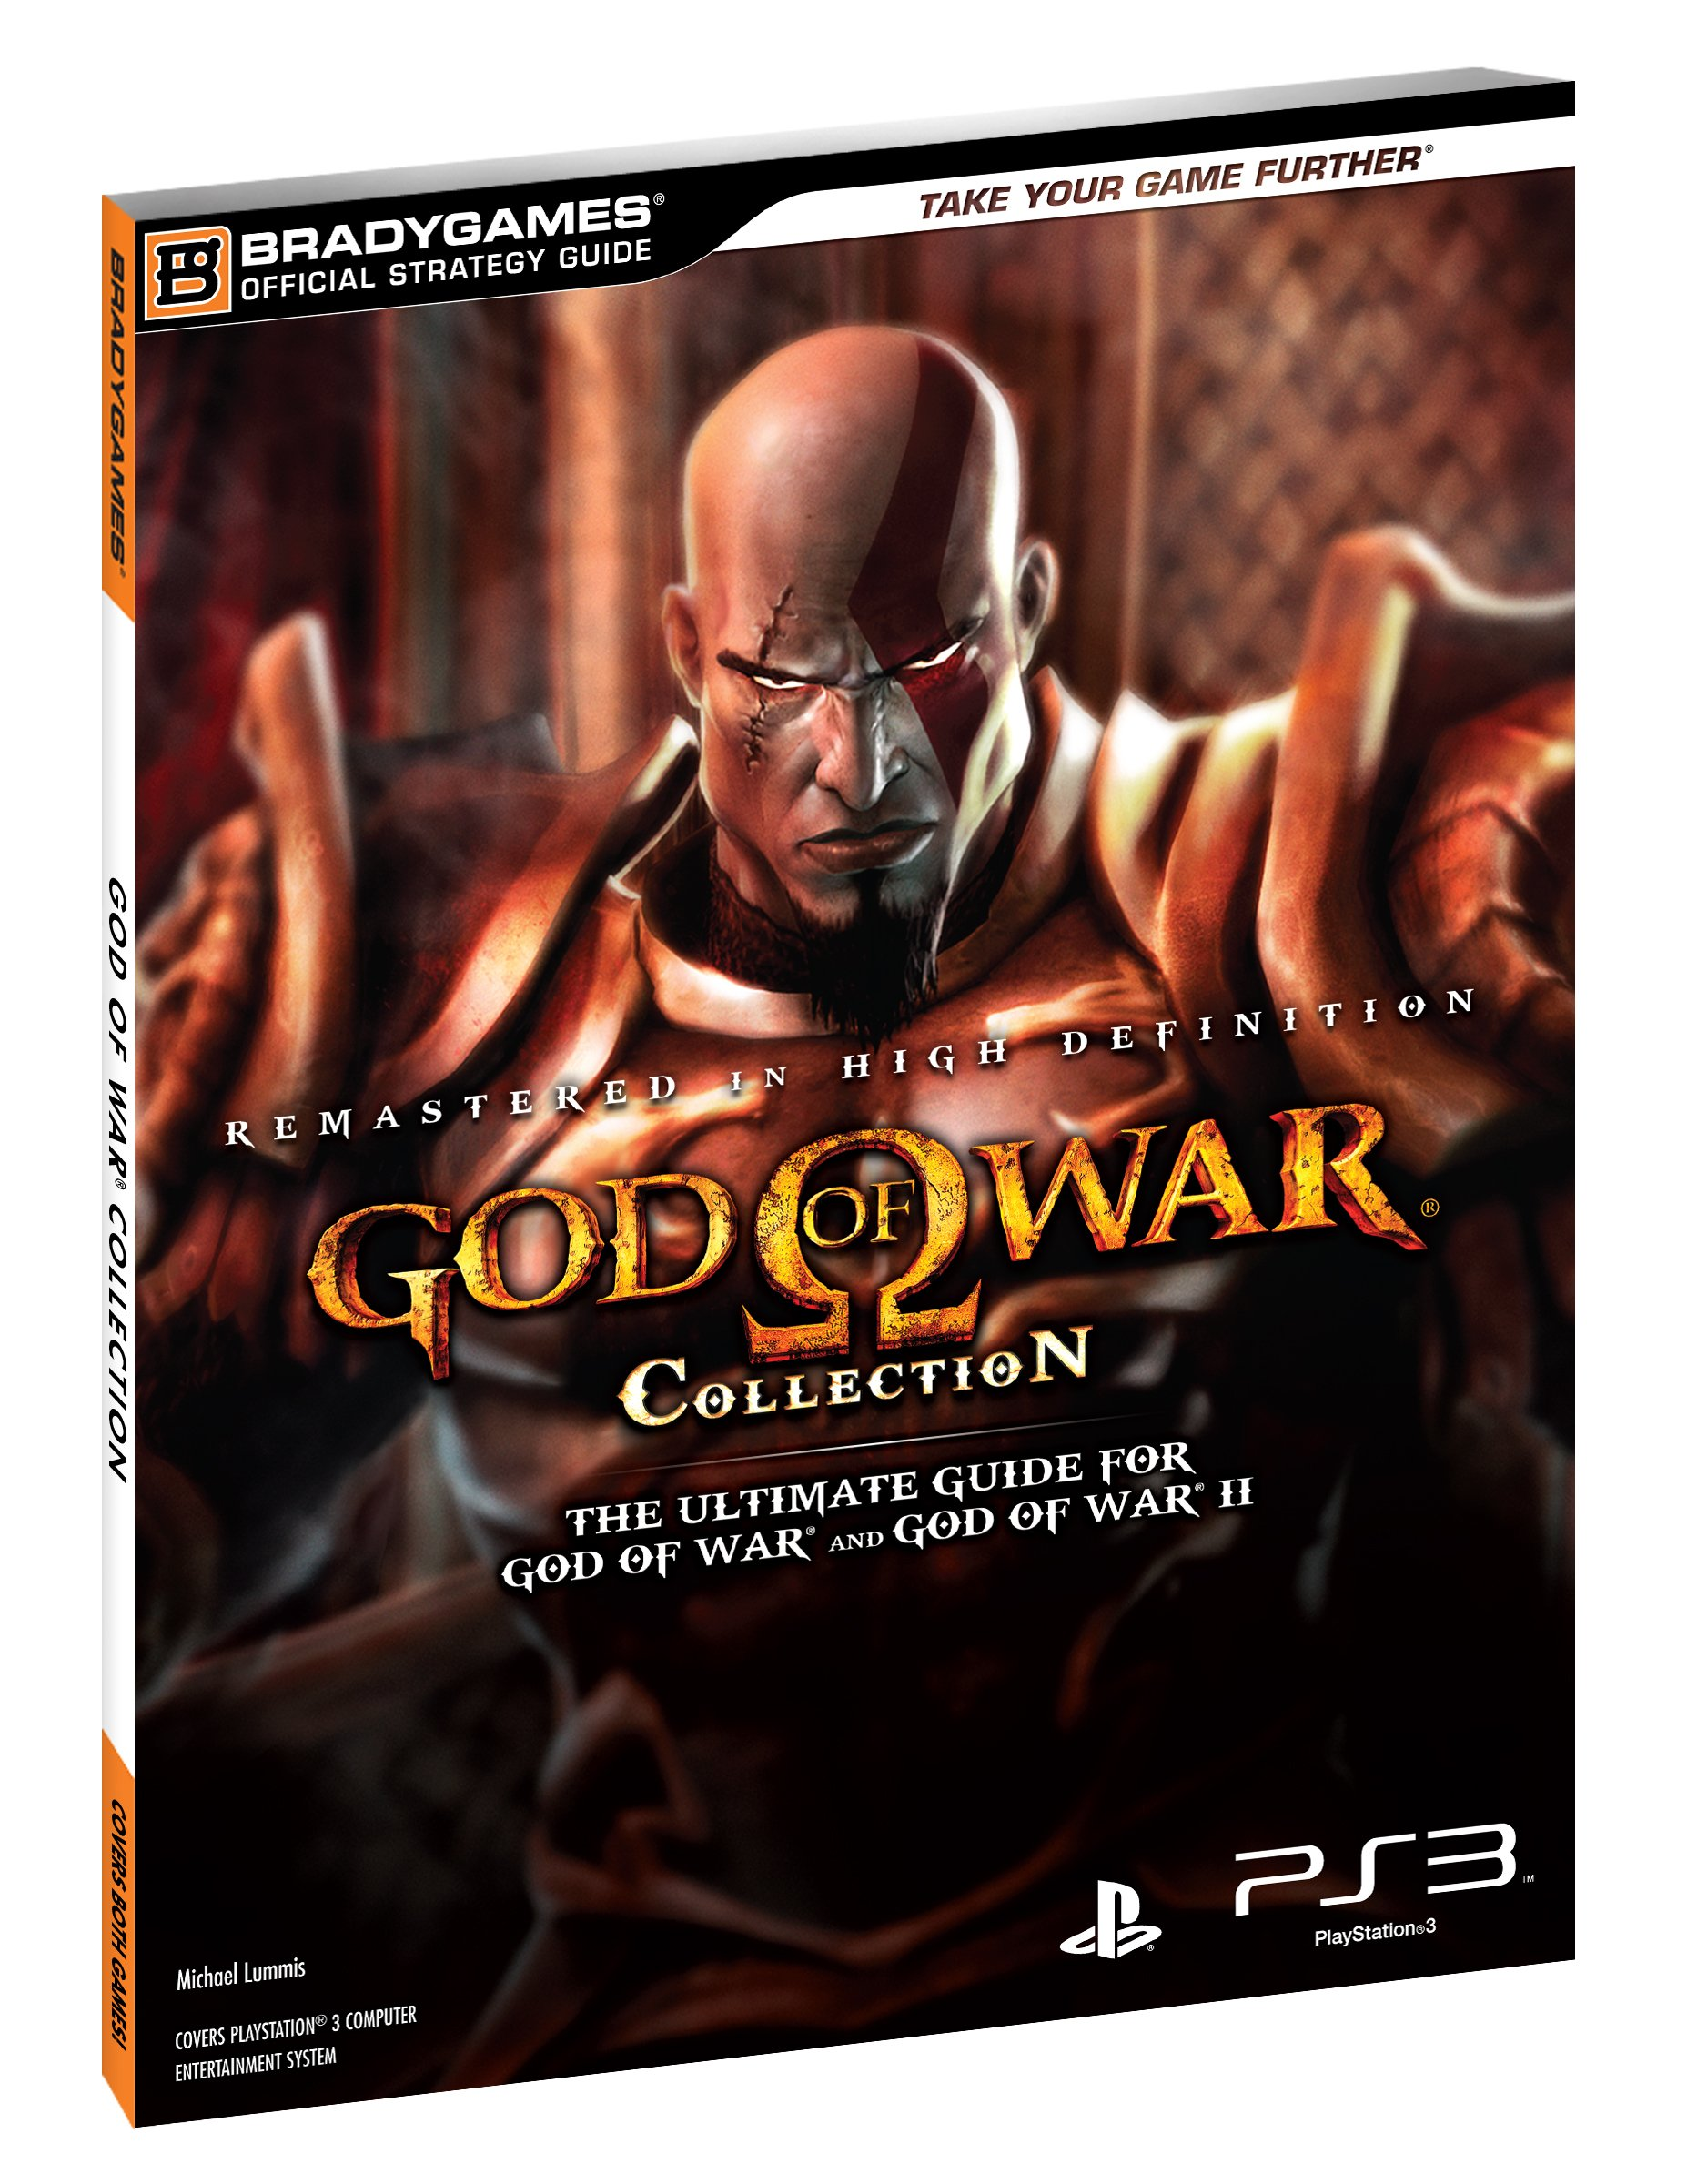 God of war: chains of olympus official strategy guide (bradygames.